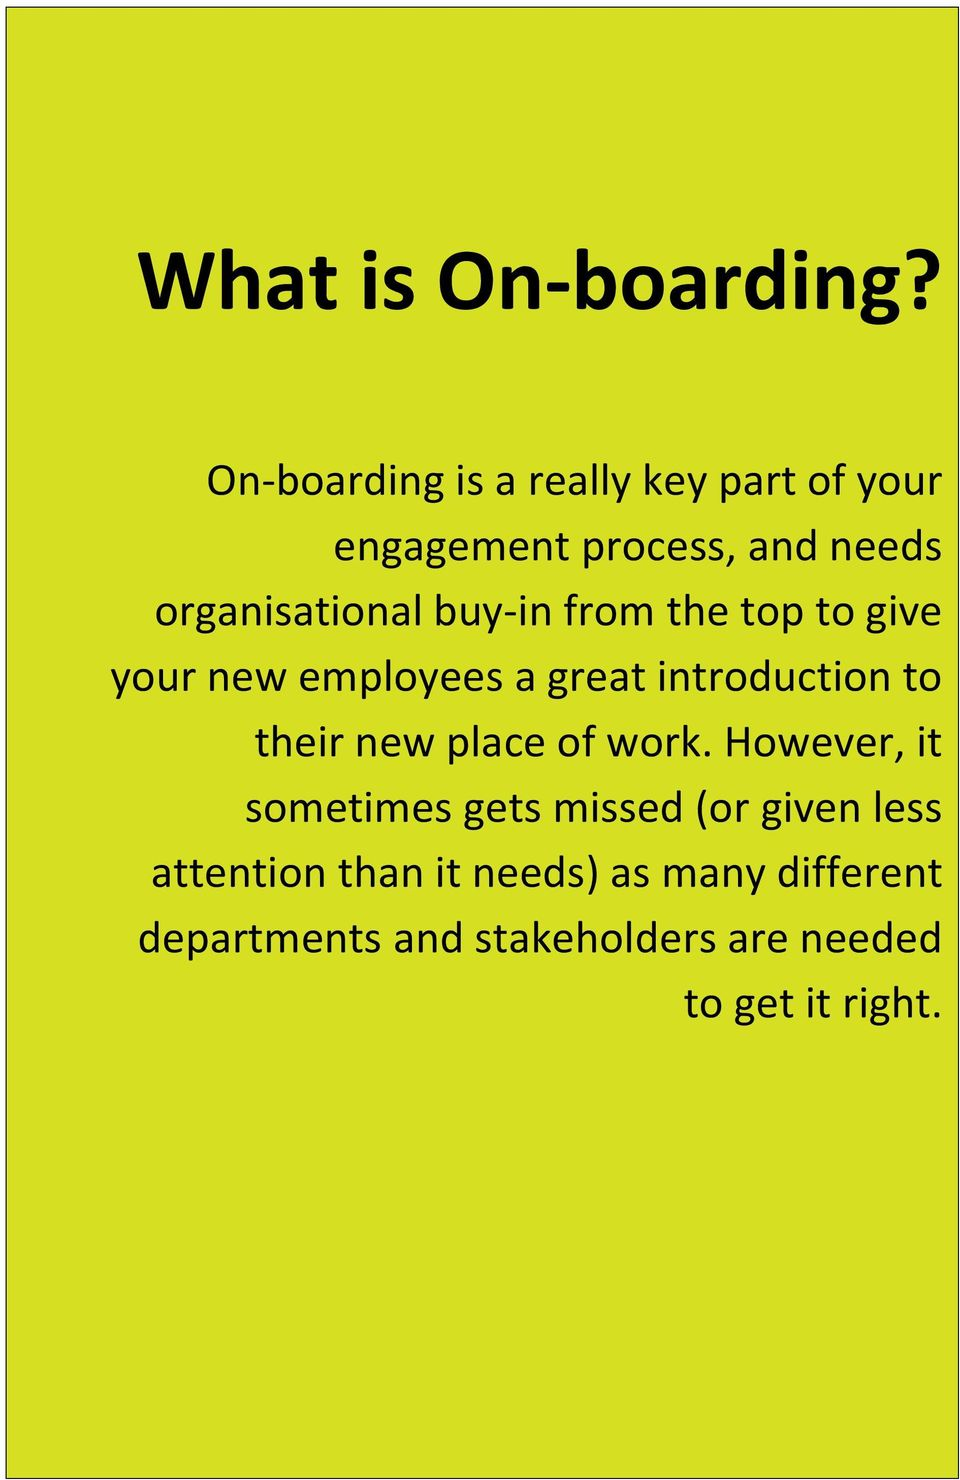 buy-in from the top to give your new employees a great introduction to their new place